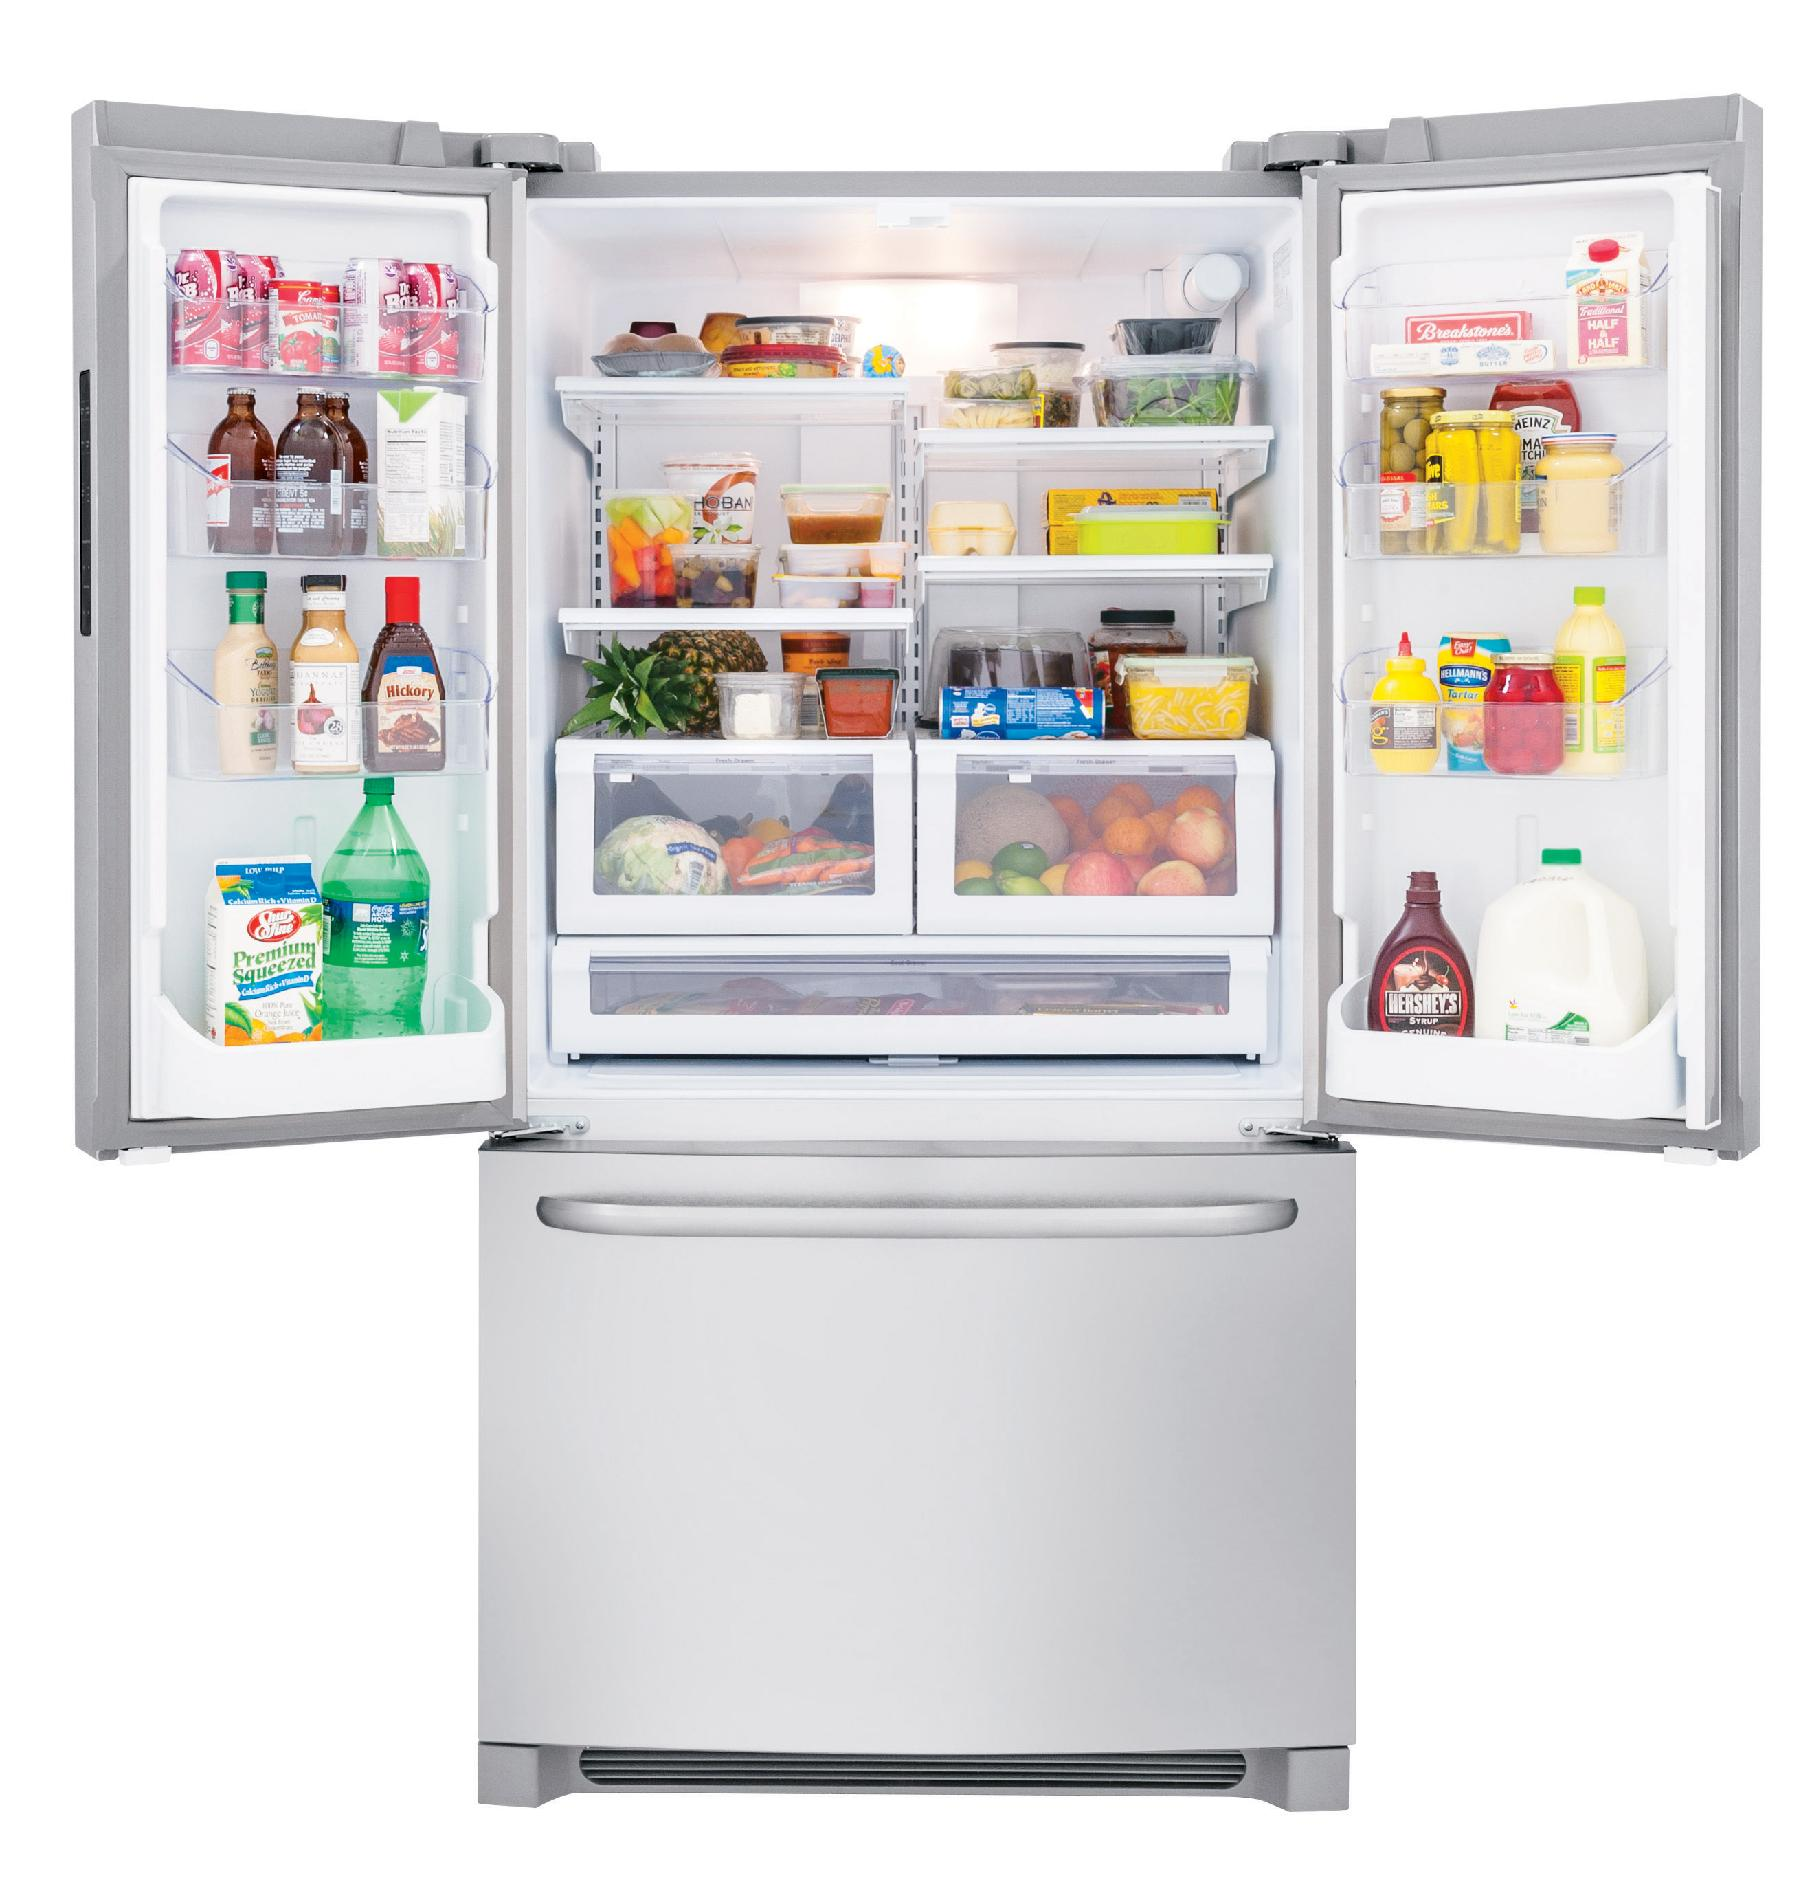 Frigidaire FFHN2740PS 26.6 cu. ft. French Door Refrigerator - Stainless Steel